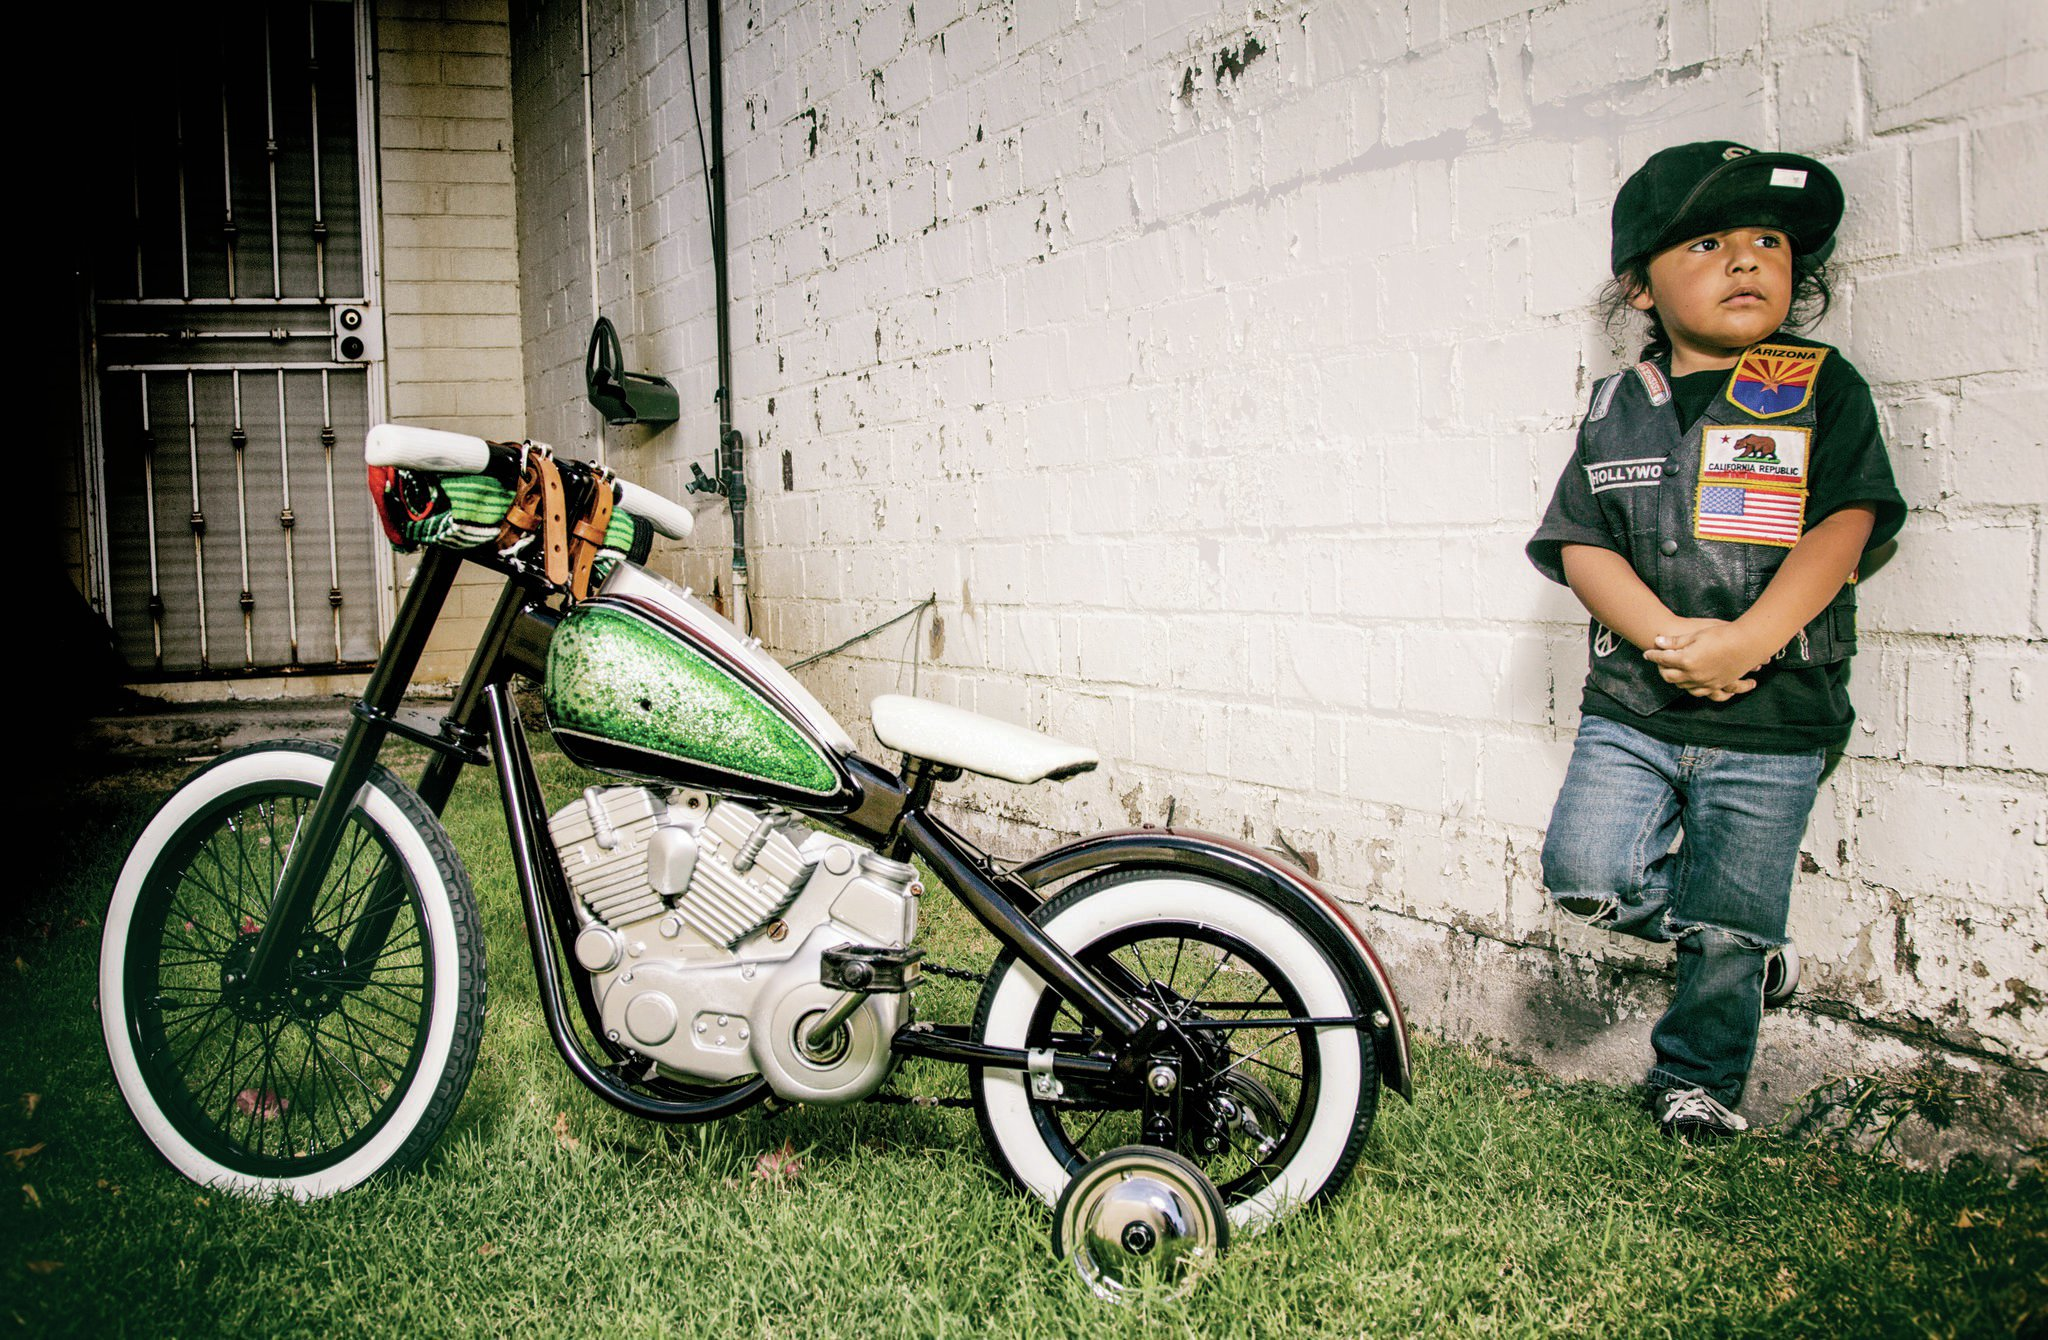 171605305299 additionally Utility Trailer Manufacturing  pany moreover MIS1123 Slotted Hex Nut 716 besides 1509 Harley Davidson Kid Bike also Alternator Stator. on chassis electrical parts